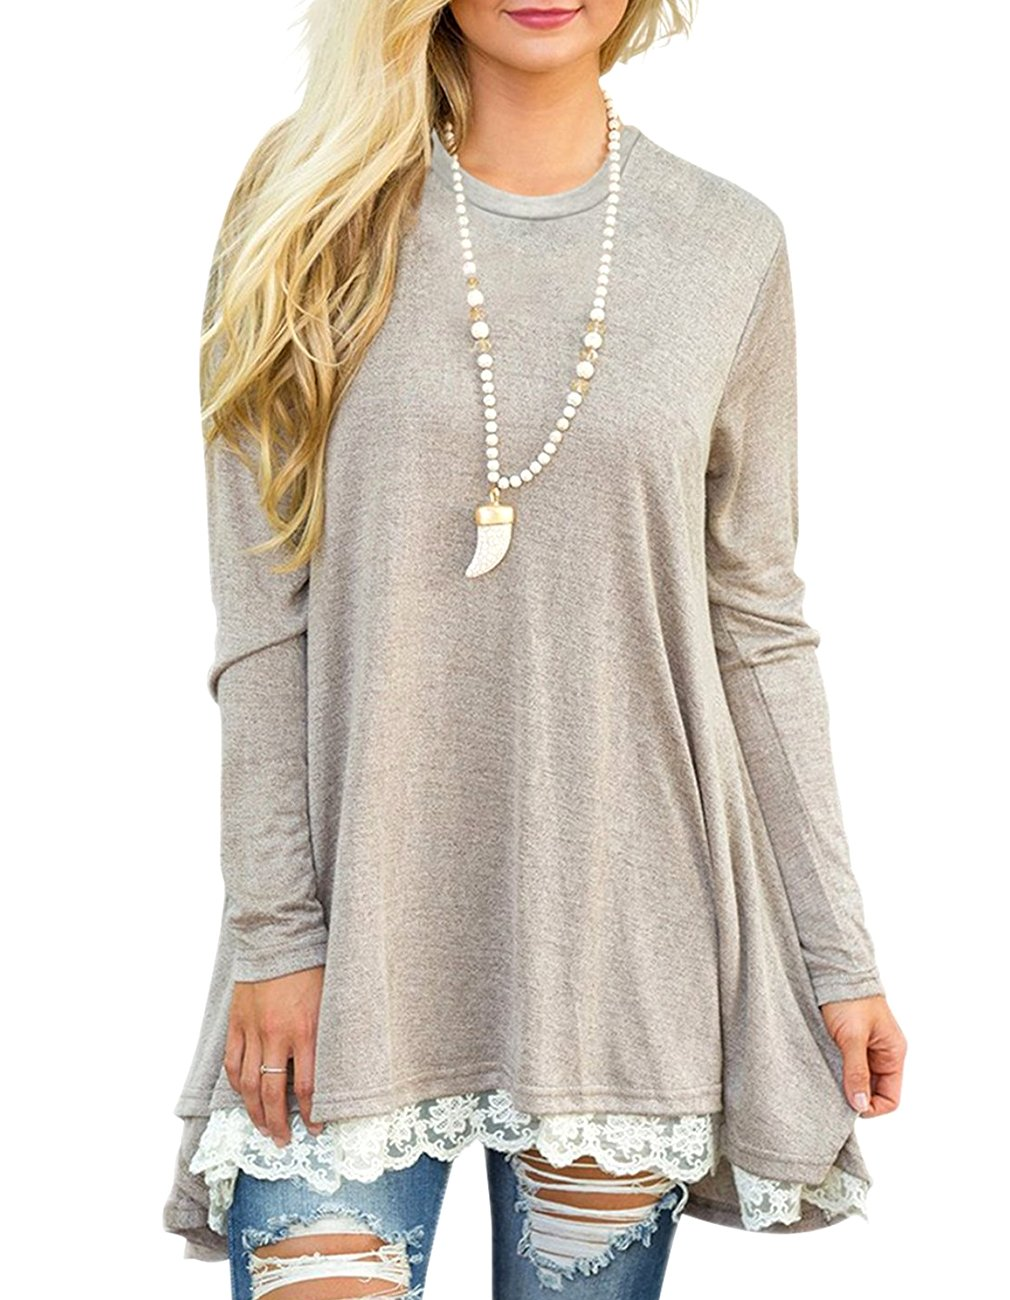 Miskely Women's Long Sleeve Lace Tunic Tops Round Neck Loose Blouse Casual Swing Cotton T-Shirt for Leggings (L, Light Khaki) by Miskely (Image #1)